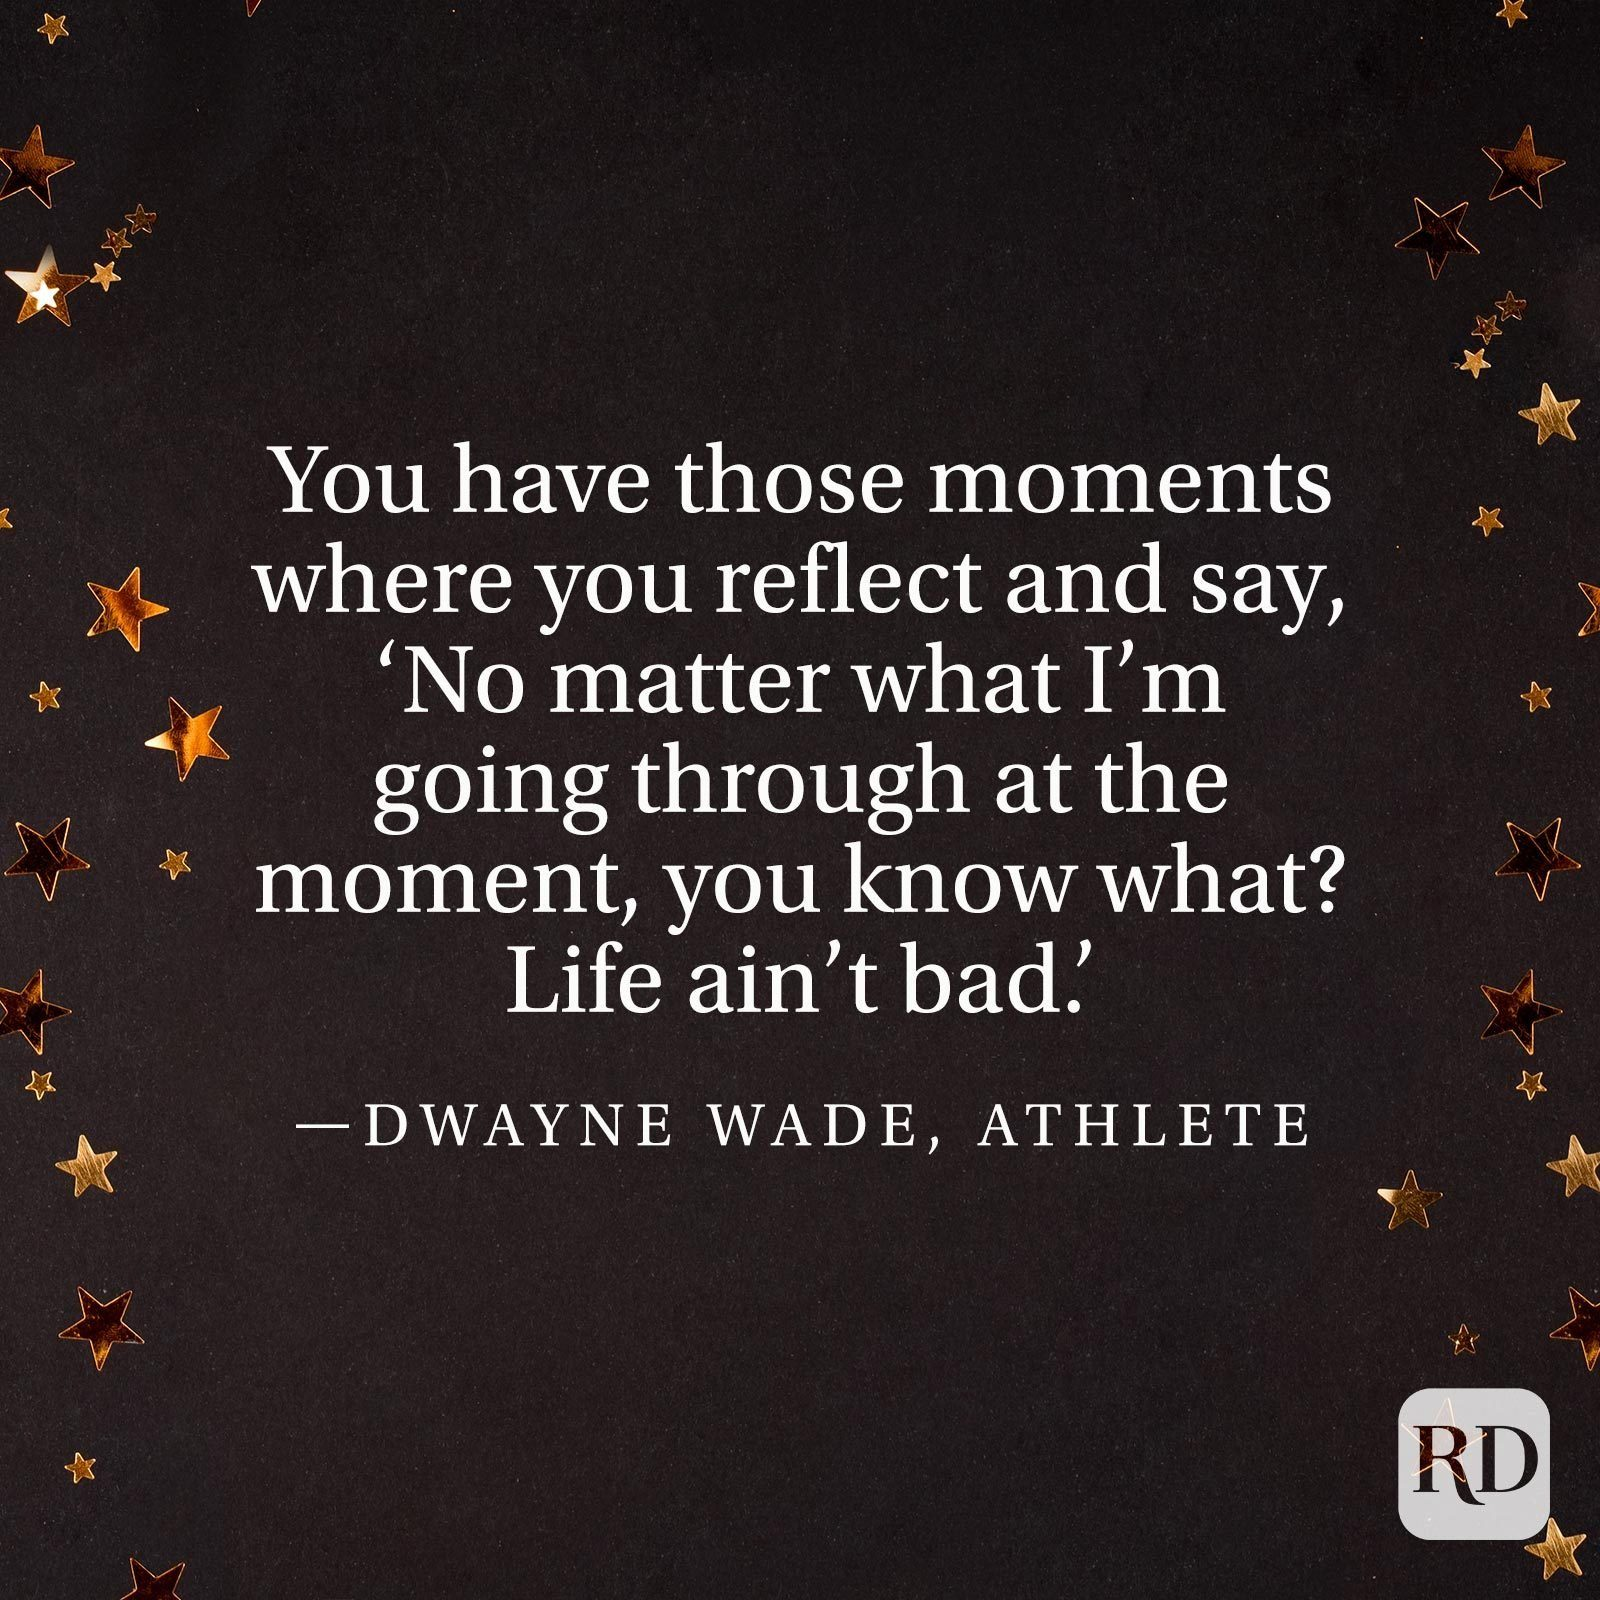 """""""You have those moments where you reflect and say, 'No matter what I'm going through at the moment, you know what? Life ain't bad.'"""" —Dwayne Wade, athlete"""